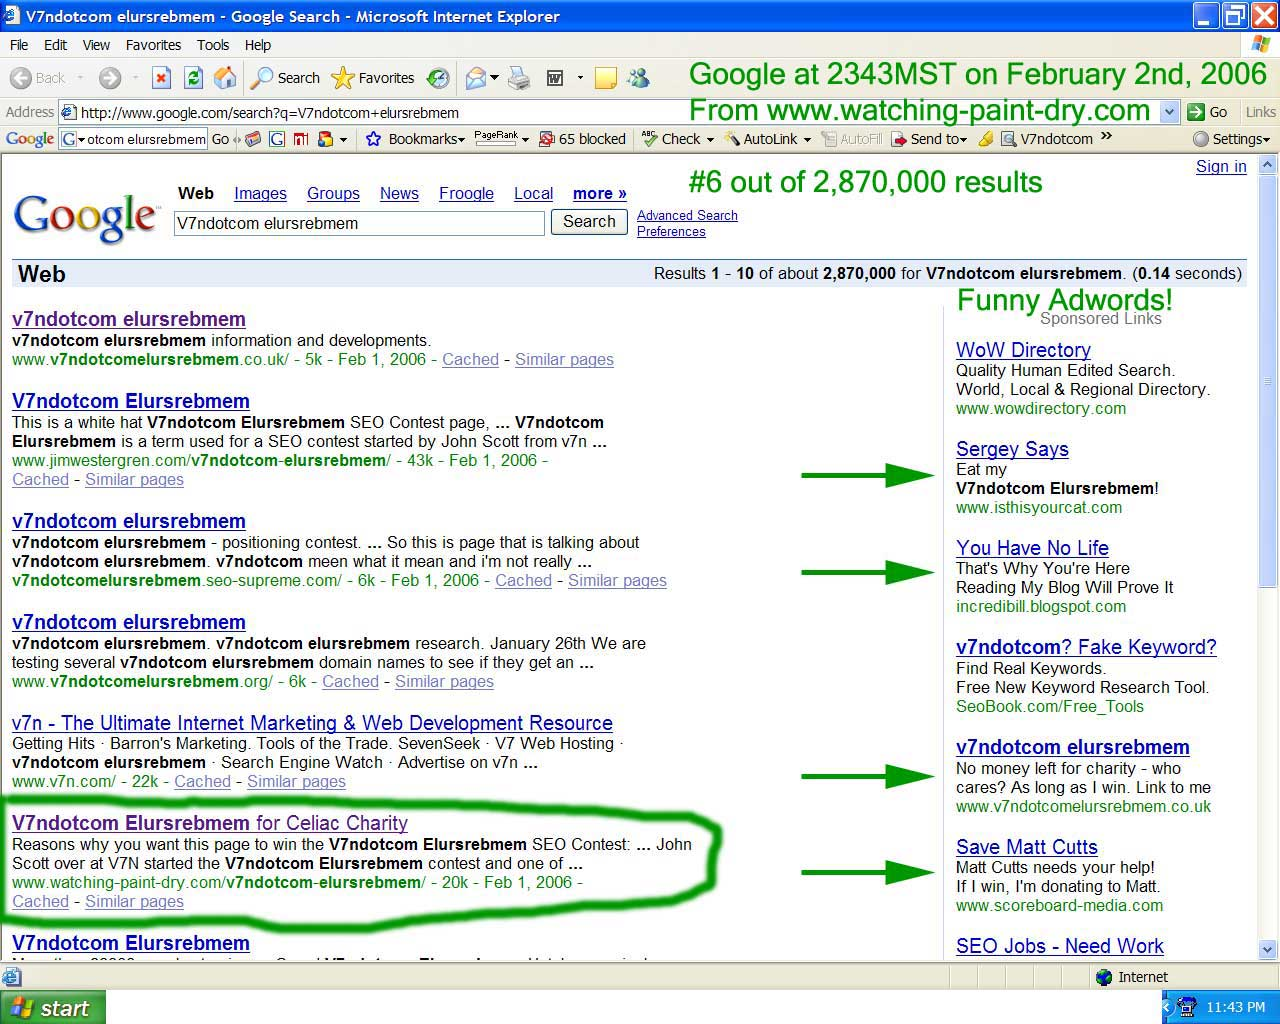 Some Really Funny Adwords